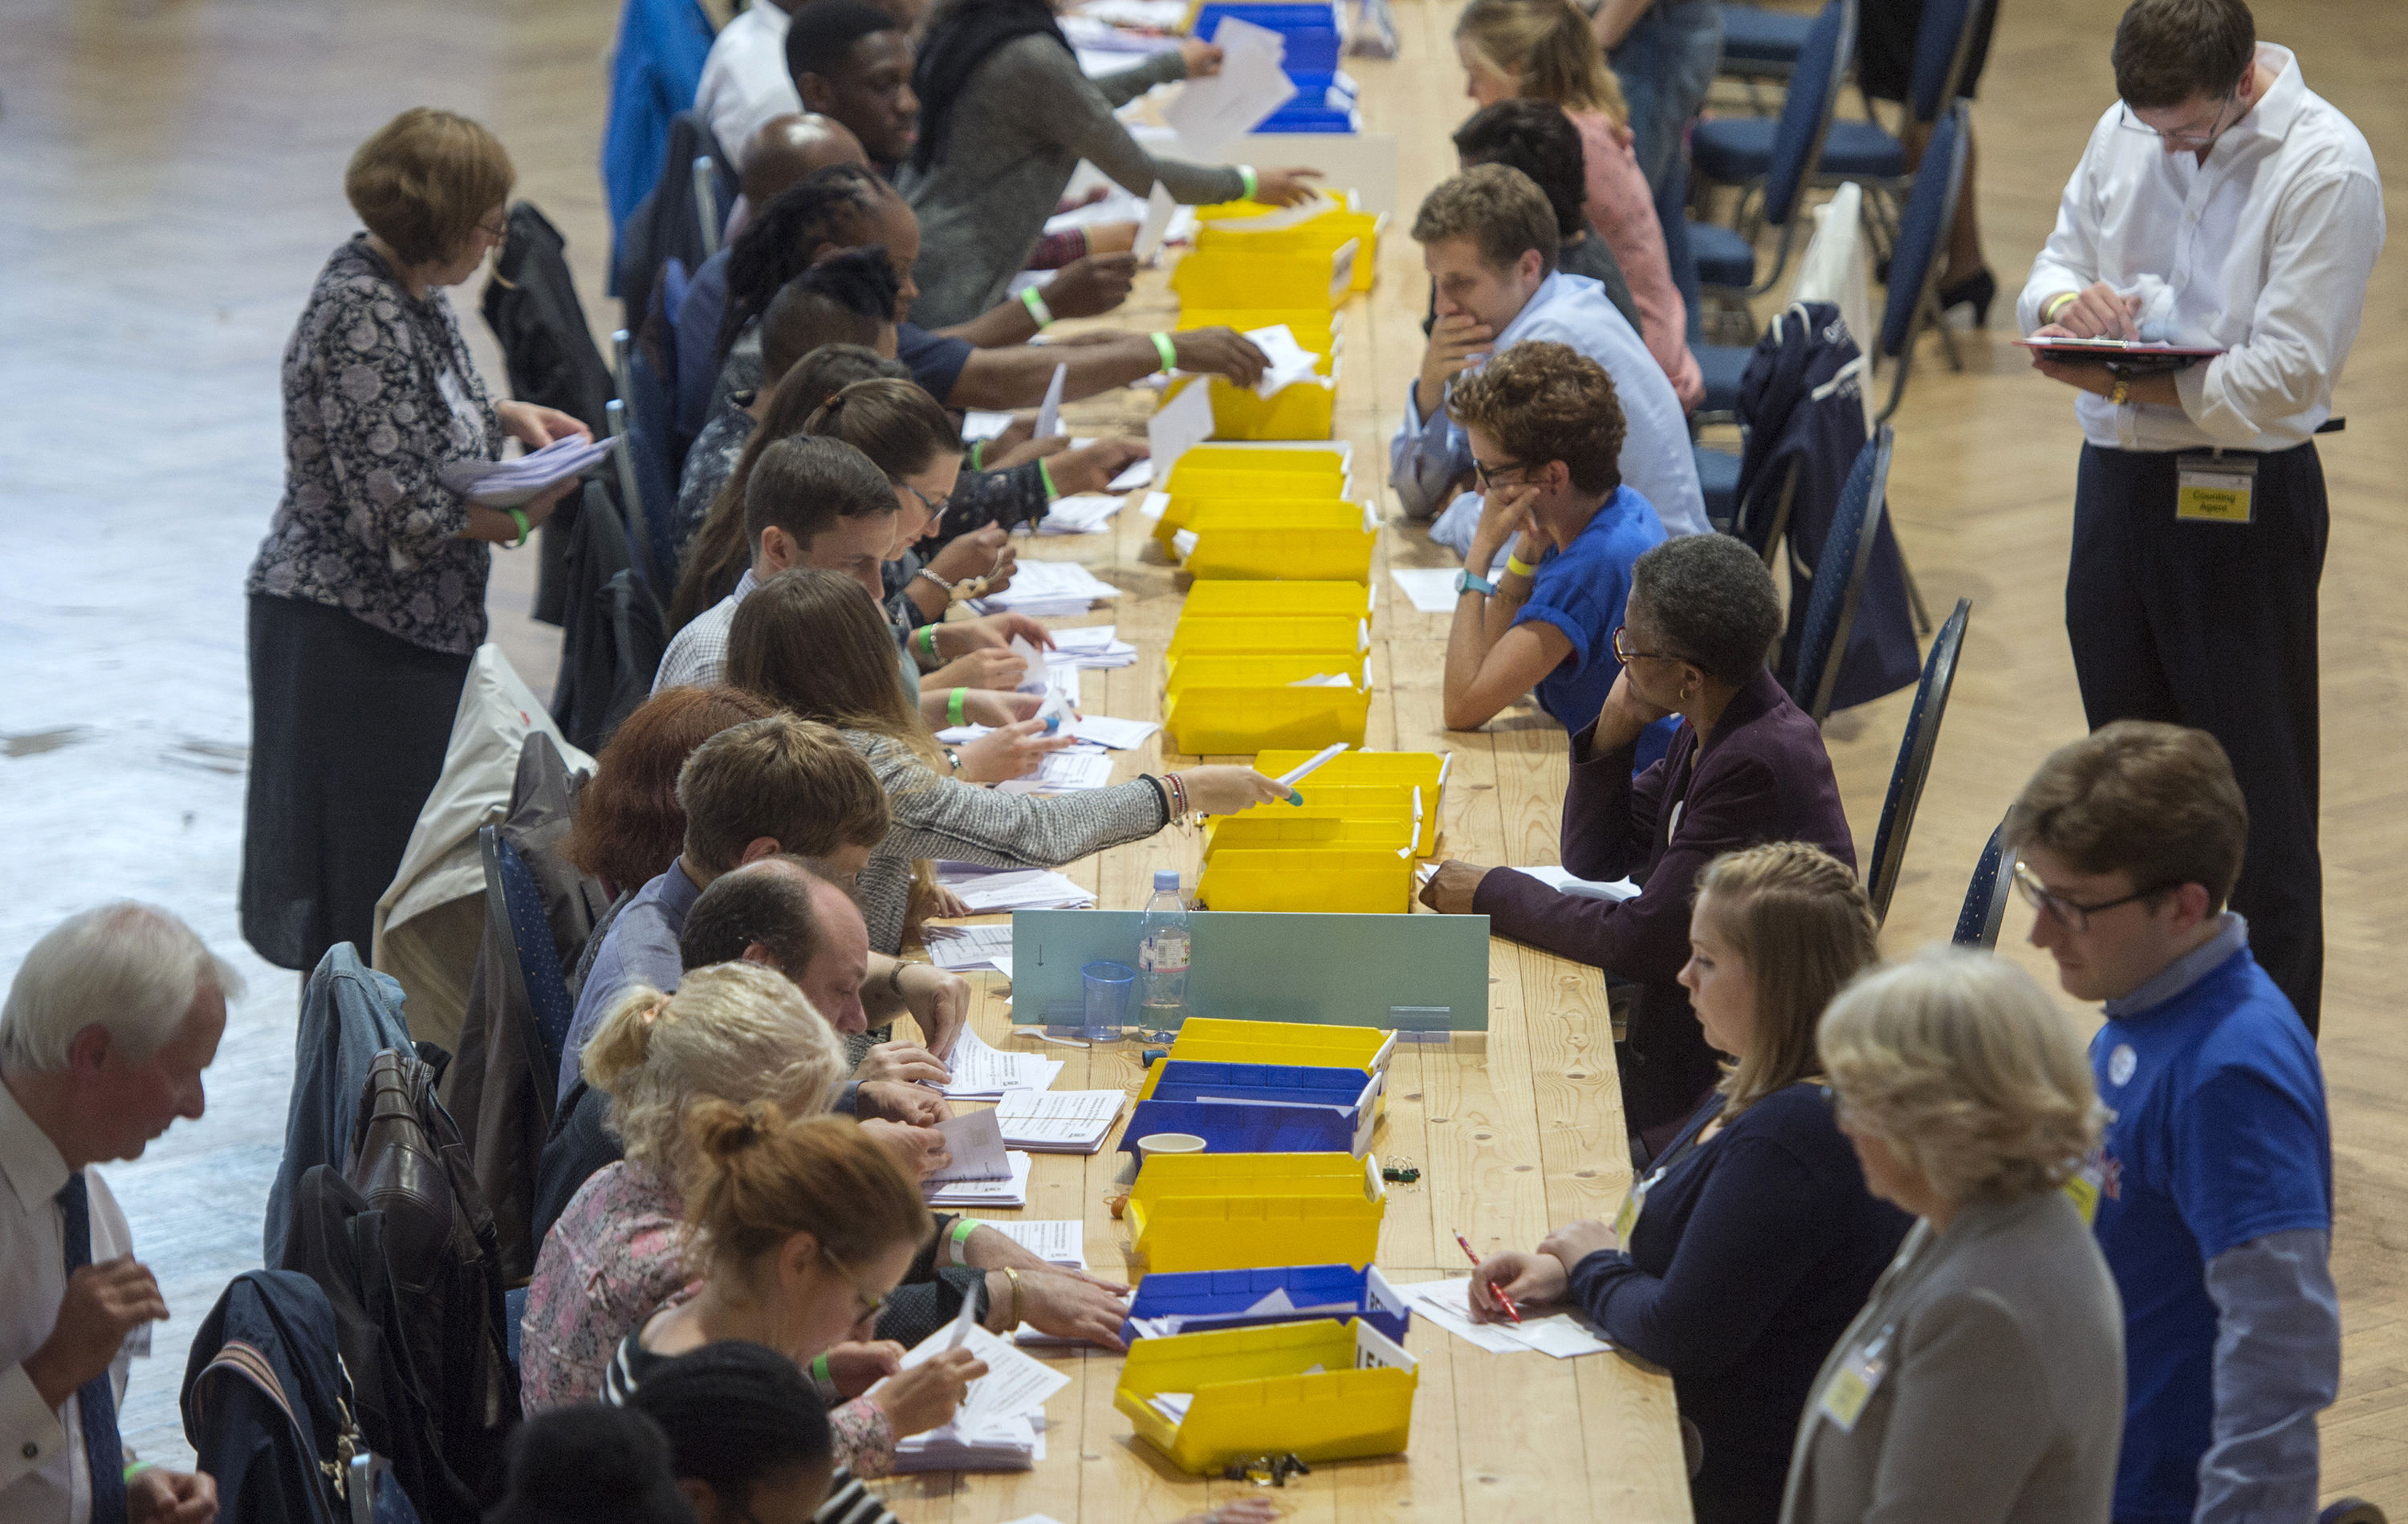 Votes are sorted into Remain, Leave and Doubtful trays as ballots are counted during the E.U. Referendum count for Westminster and the City of London at the Lindley Hall, Royal Horticultural Halls, London, on June 24, 2016.